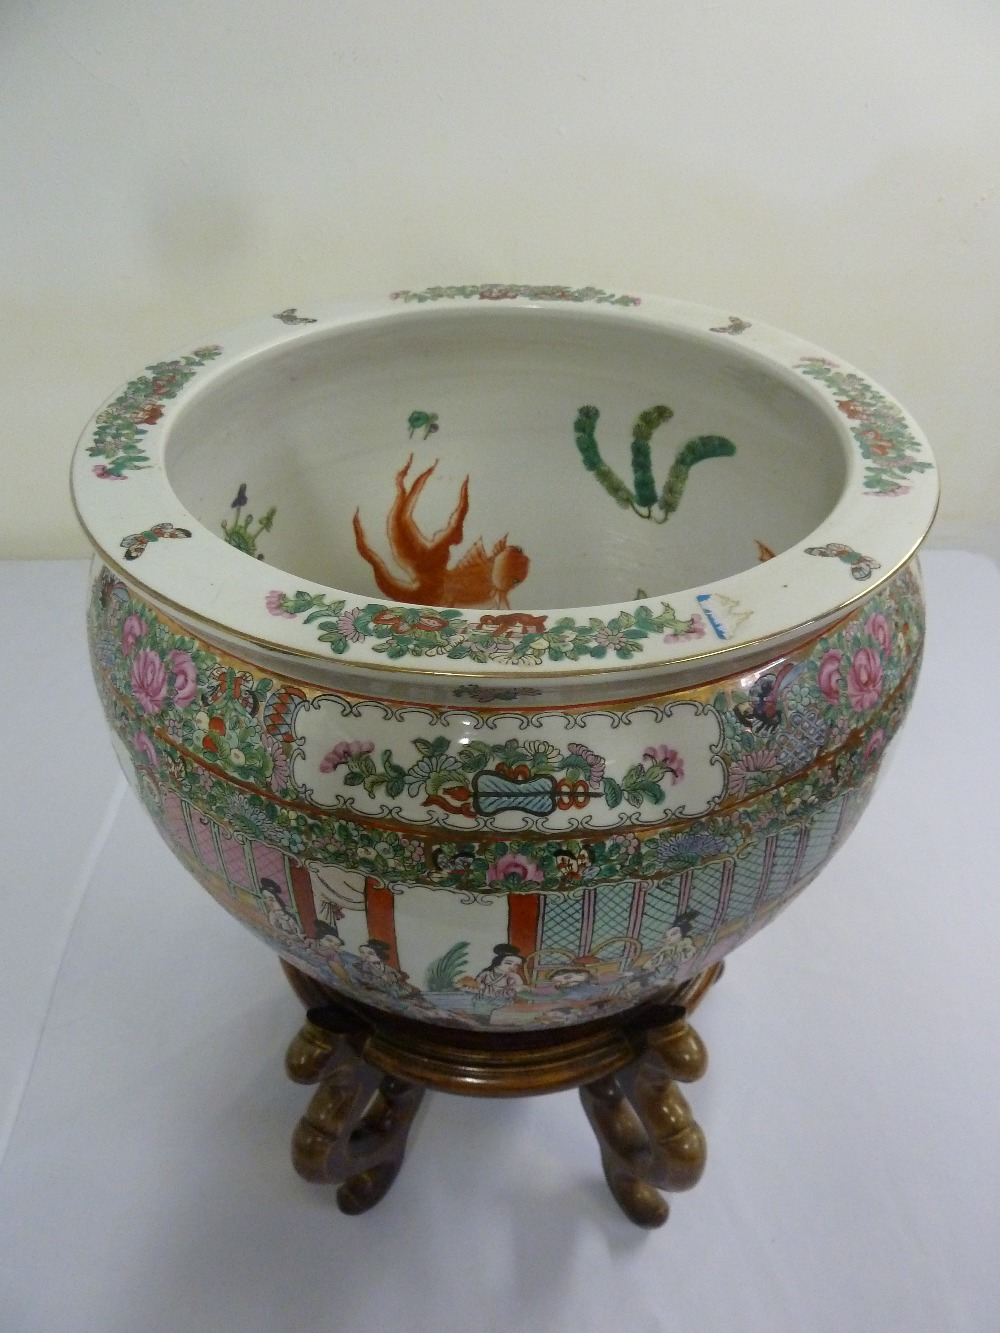 Lot 203 A 20th Century Chinese Fish Bowl On Hardwood Stand